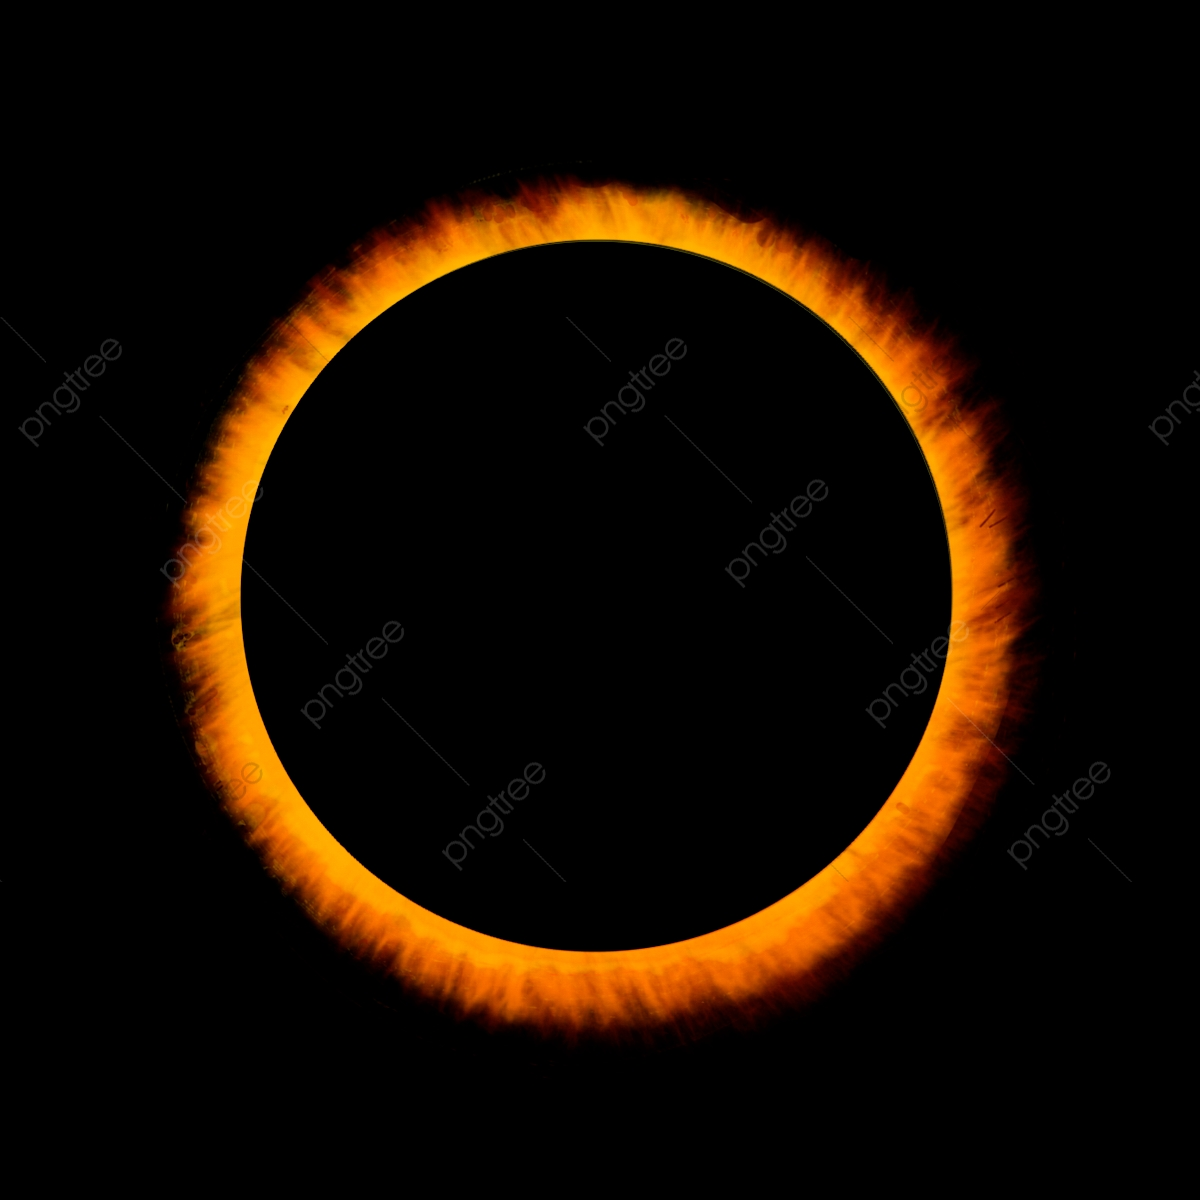 Solar Eclipse, Sun, Star PNG Transparent Clipart Image and ... clipart royalty free